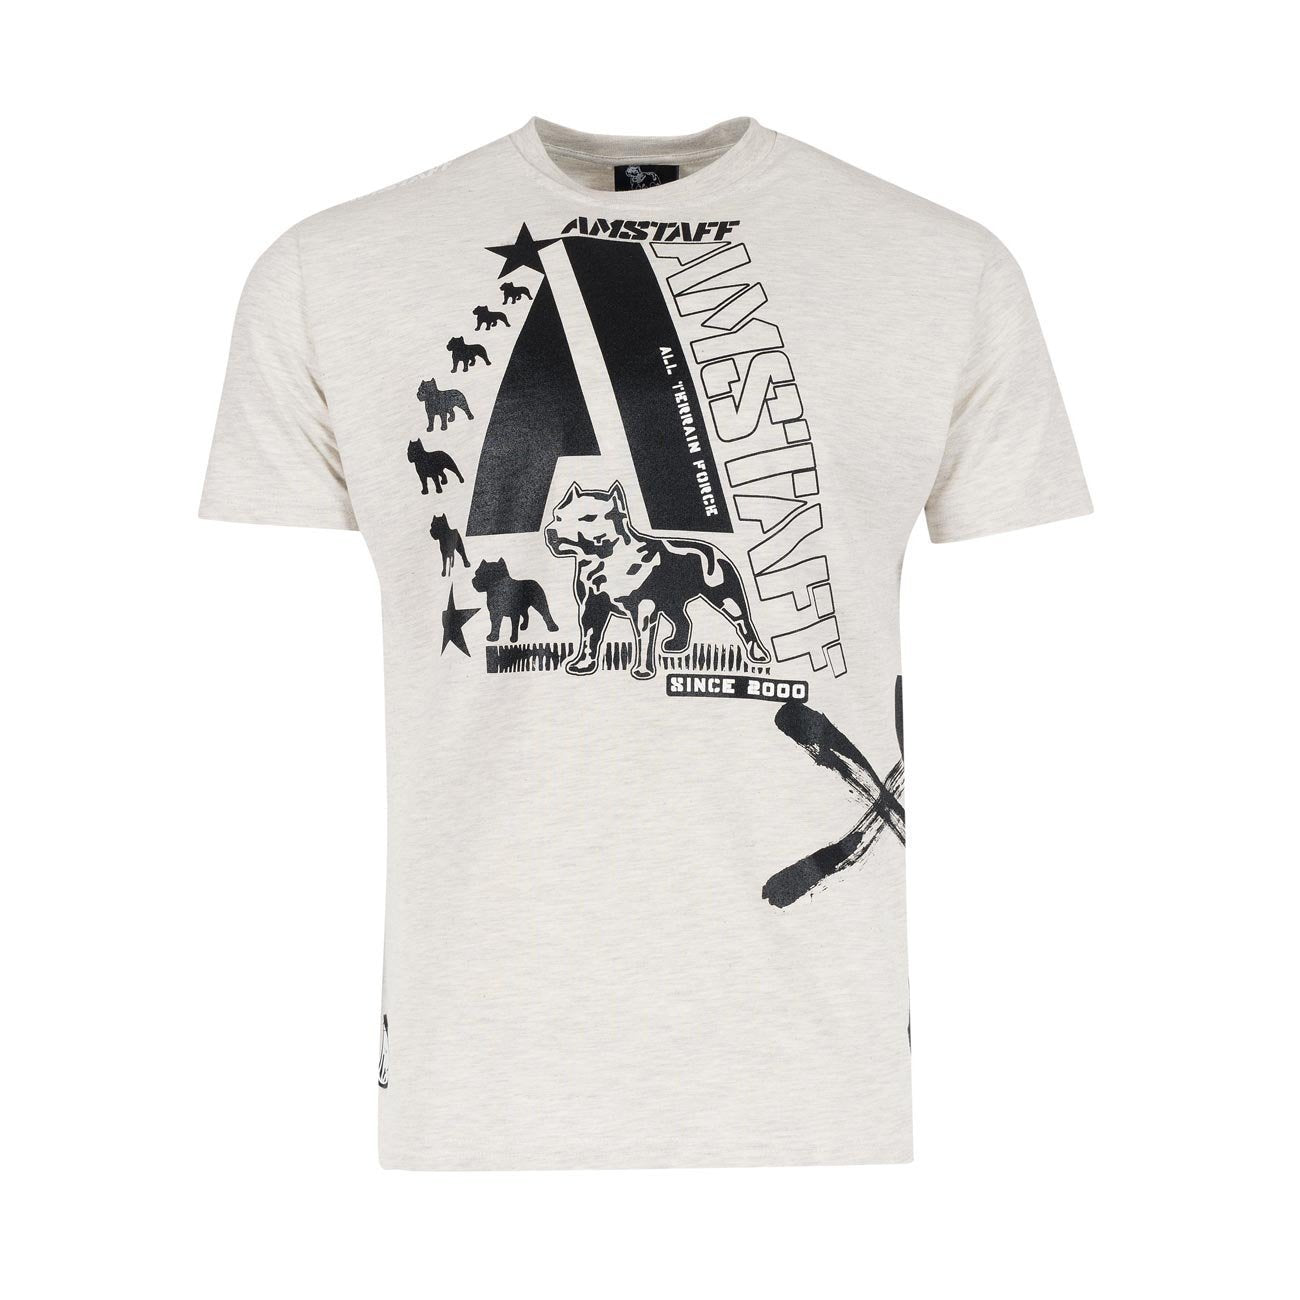 Amstaff Amatus T-Shirt hos Stillo